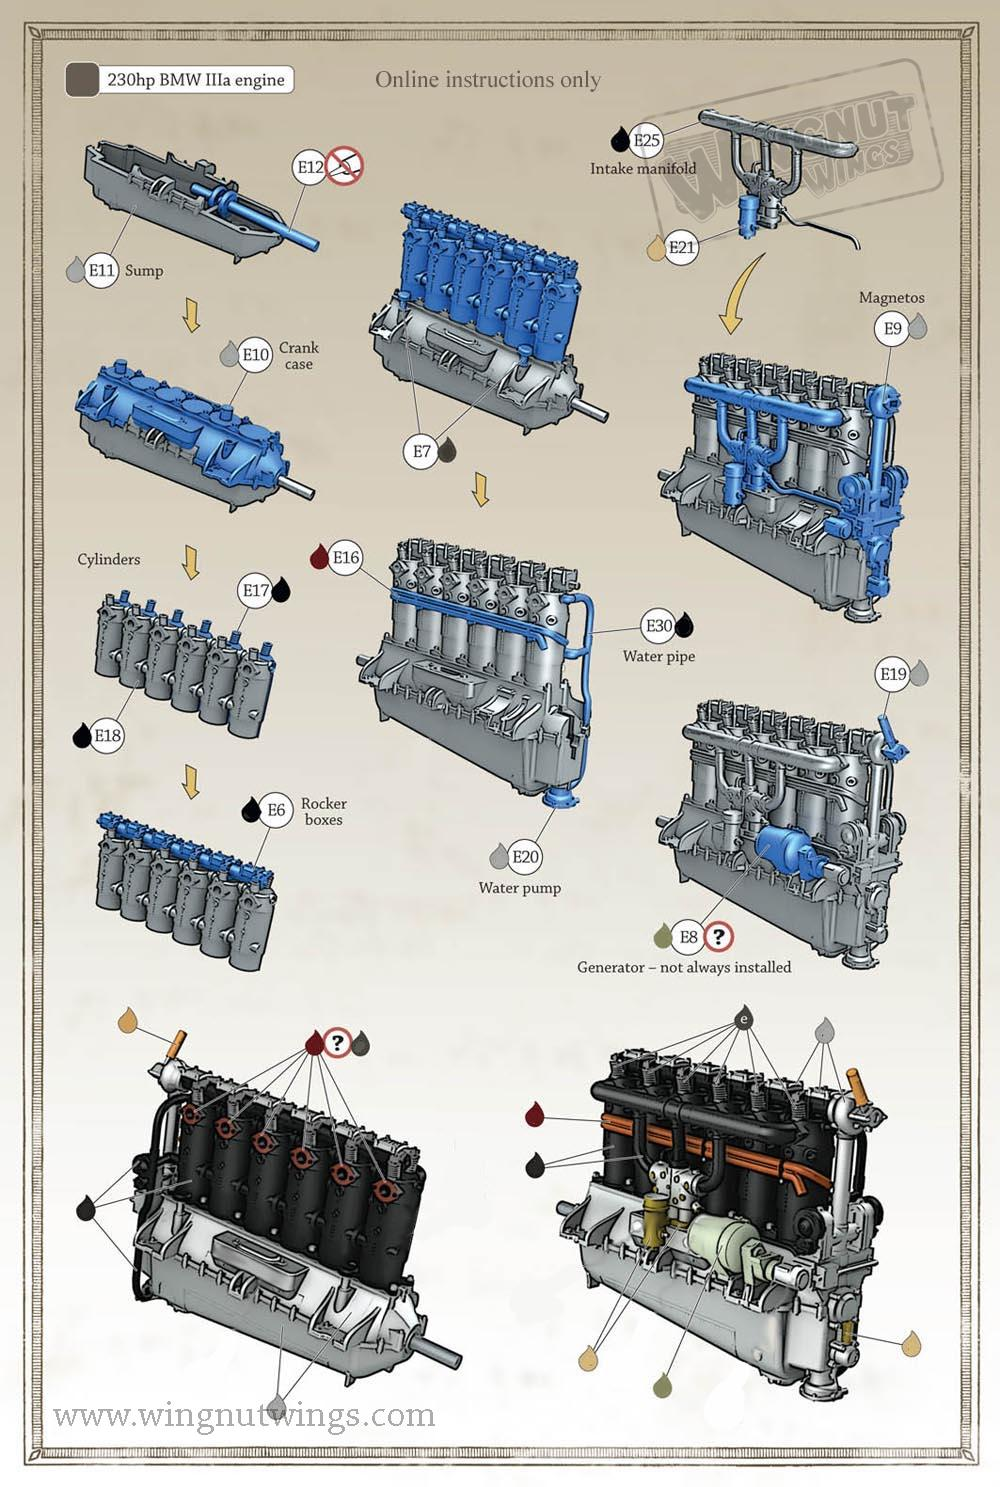 132E0013 BMW IIIa engine instructions. Online only · »